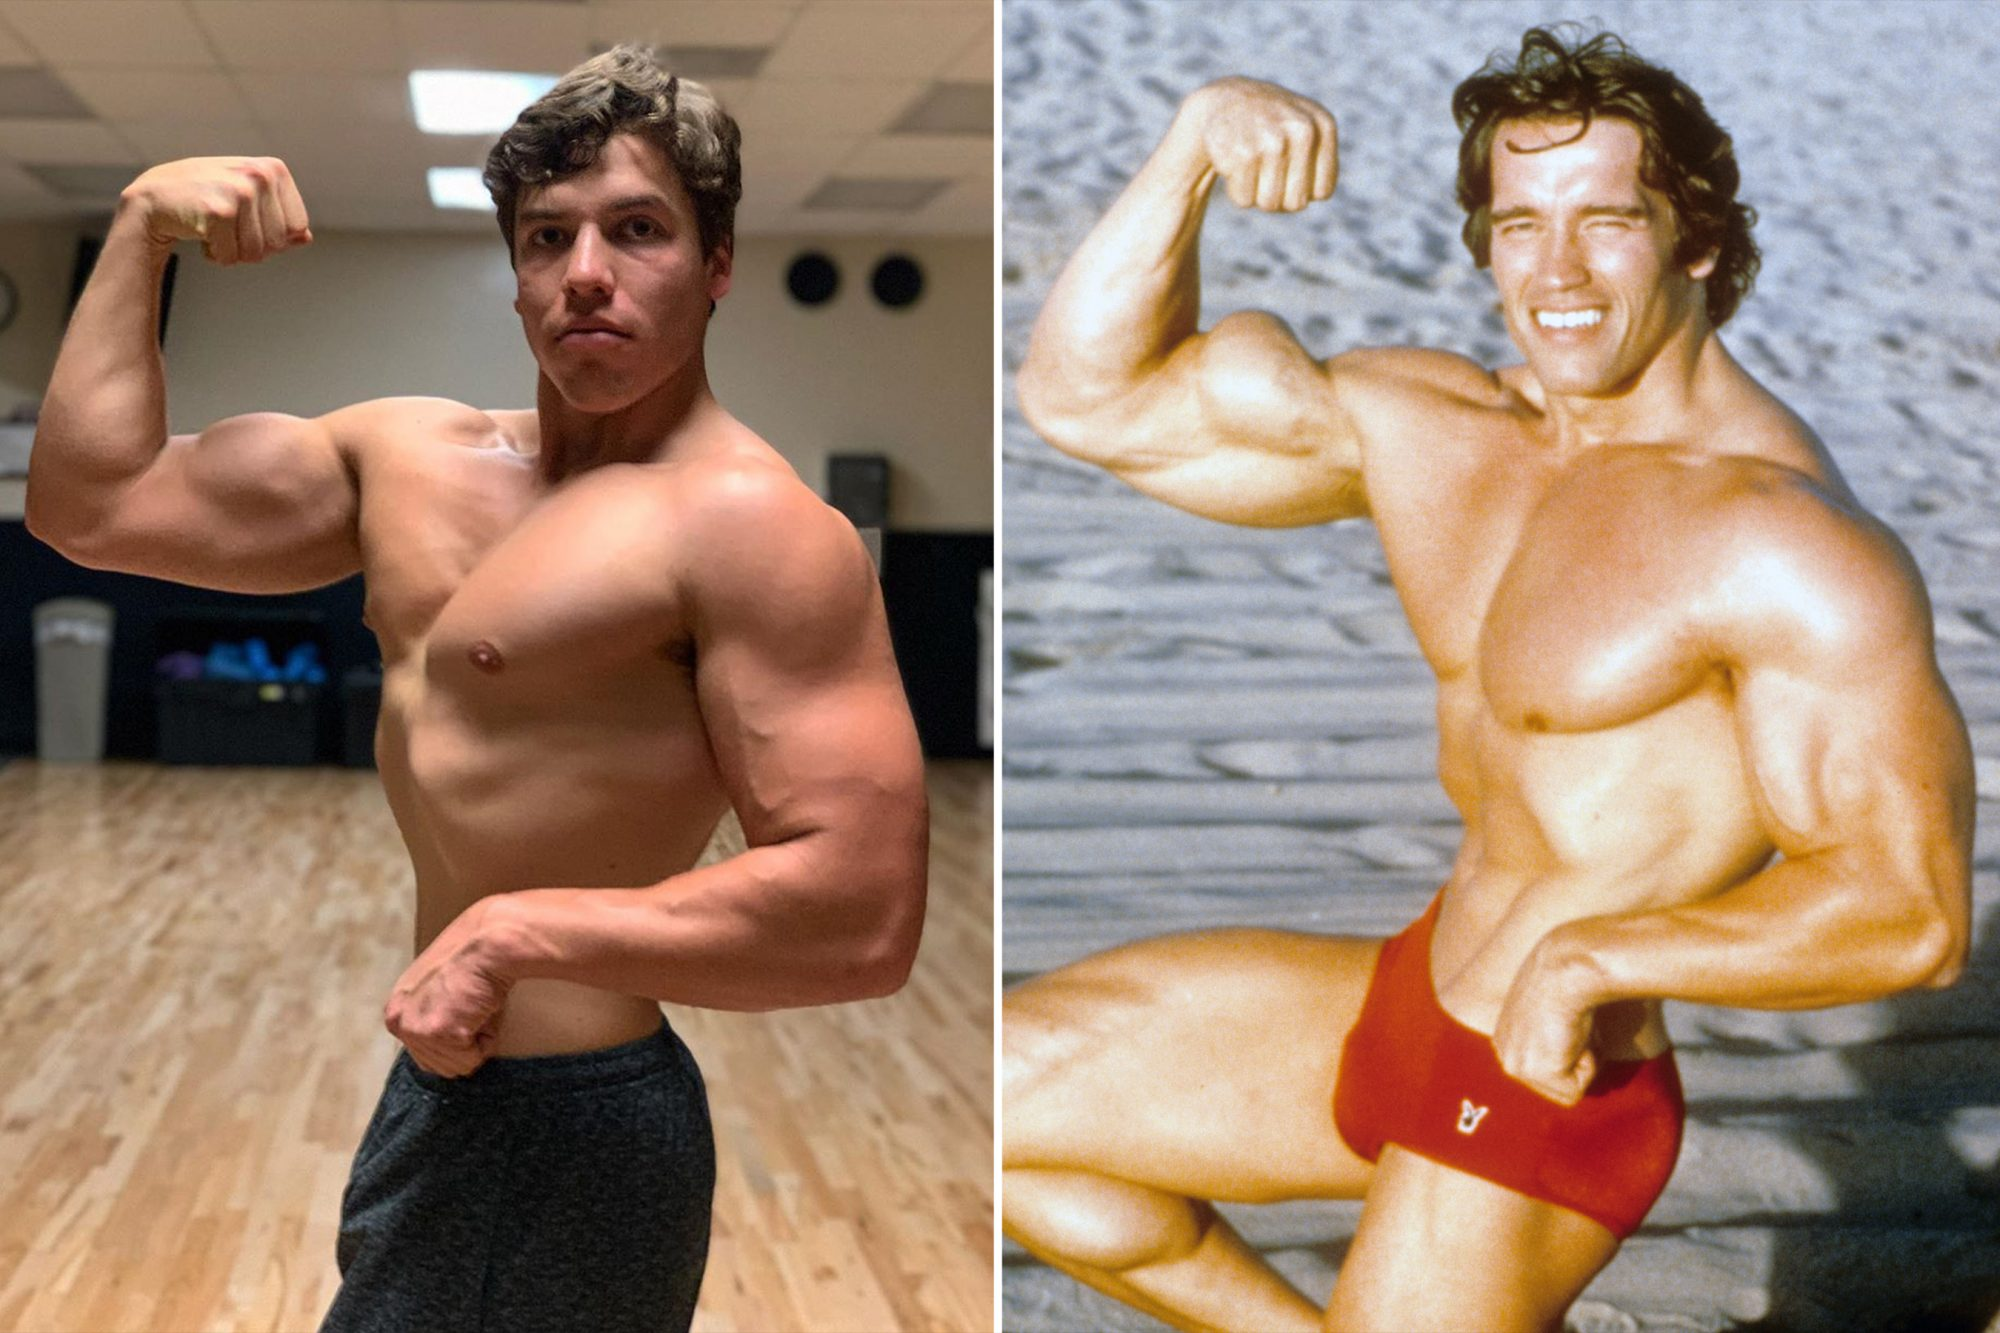 Arnold Schwarzenegger's Lookalike Son Joseph Baena, 22, Shows off His Buff Physique